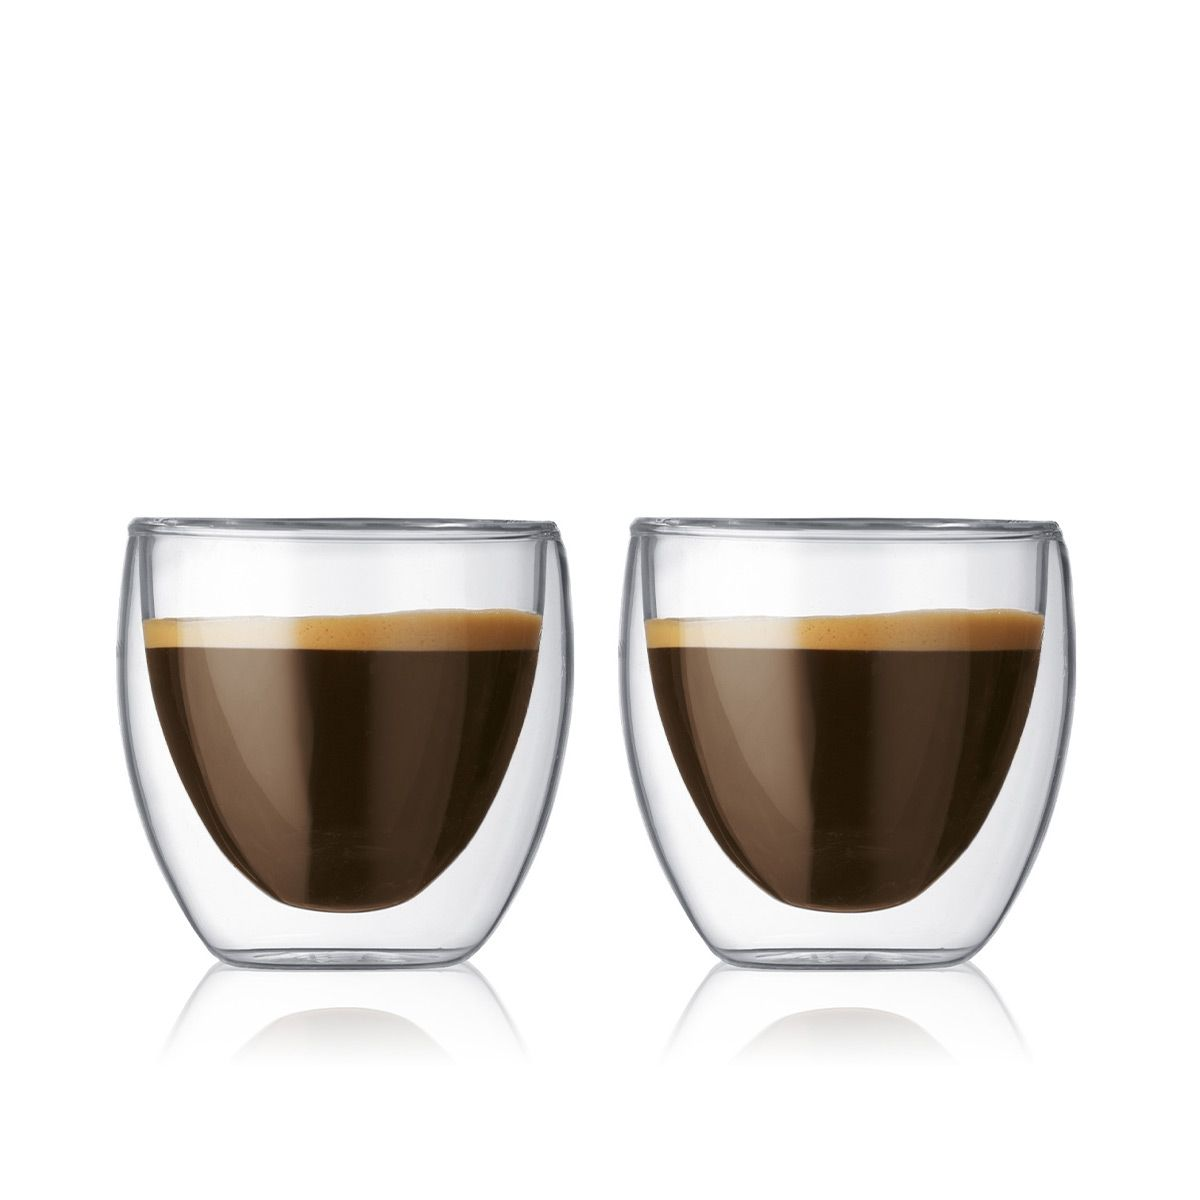 Double Wall Glasses PAVINA - 2 pieces set 2.5 oz